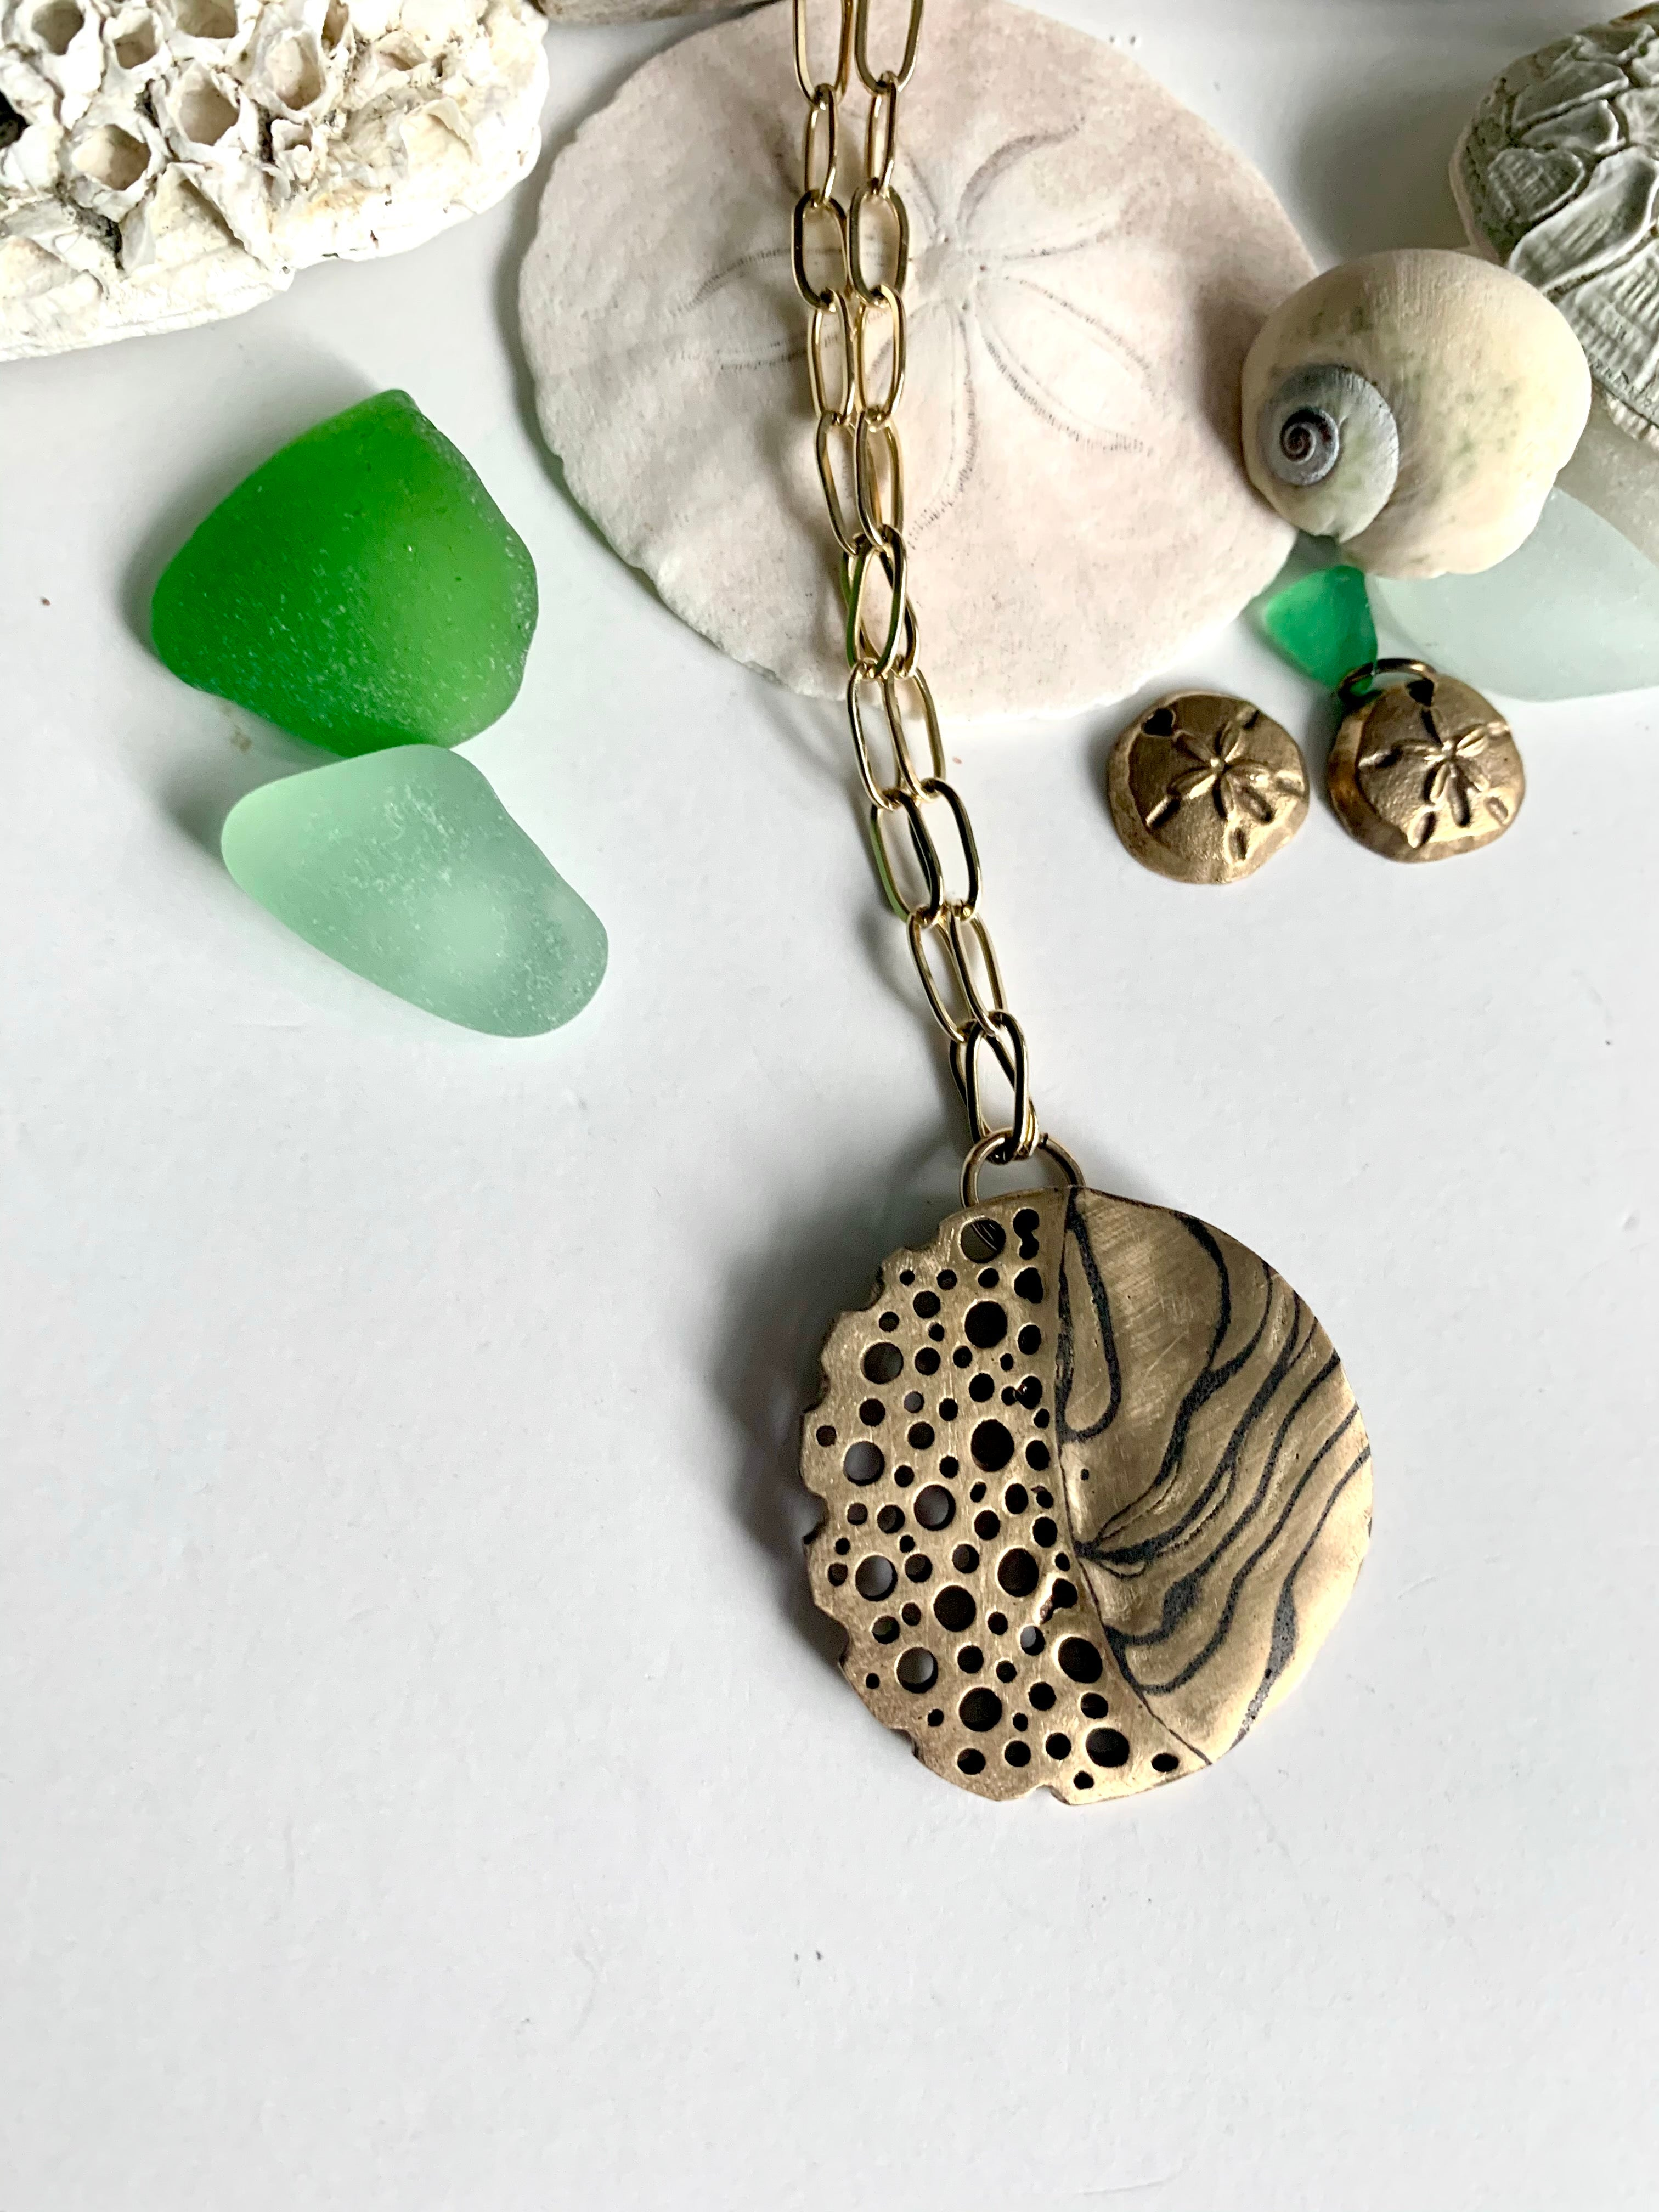 Ocean inspired hand crafted necklace with shells and green sea glass